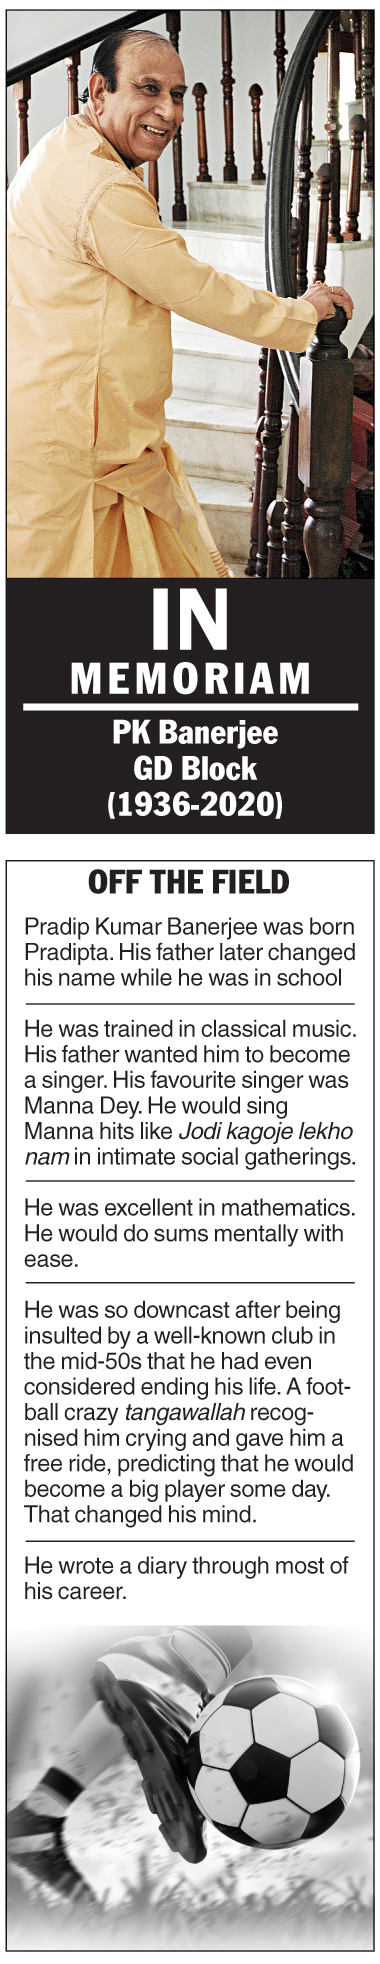 In memoriam: PK Banerjee